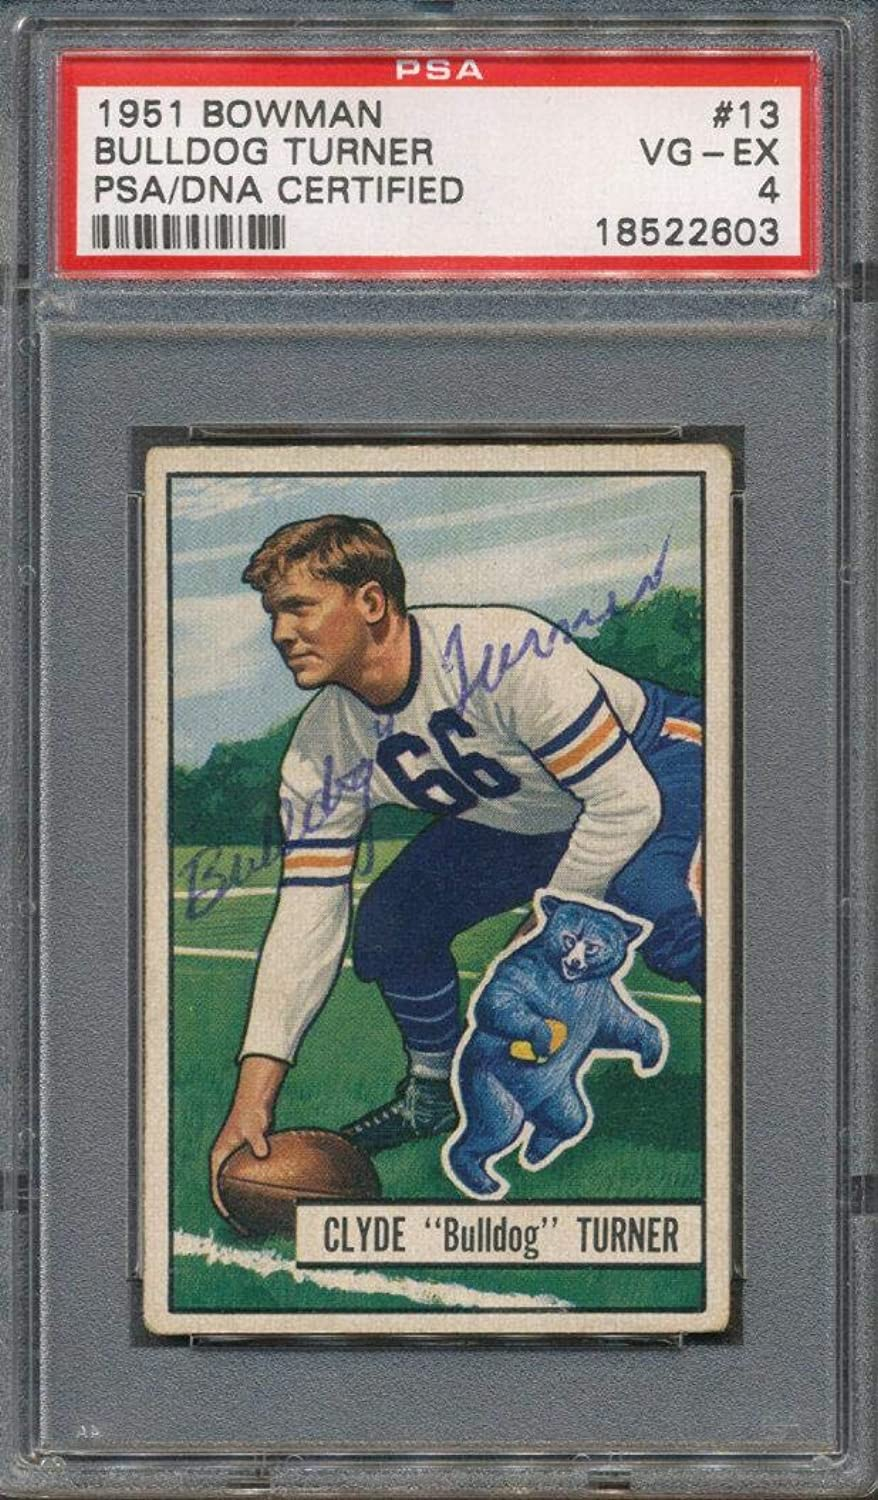 1951 Bowman  13 Bulldog Turner Certified Authentic Auto Autograph 2603PSA DNA CertifiedFootball Slabbed Autographed Cards